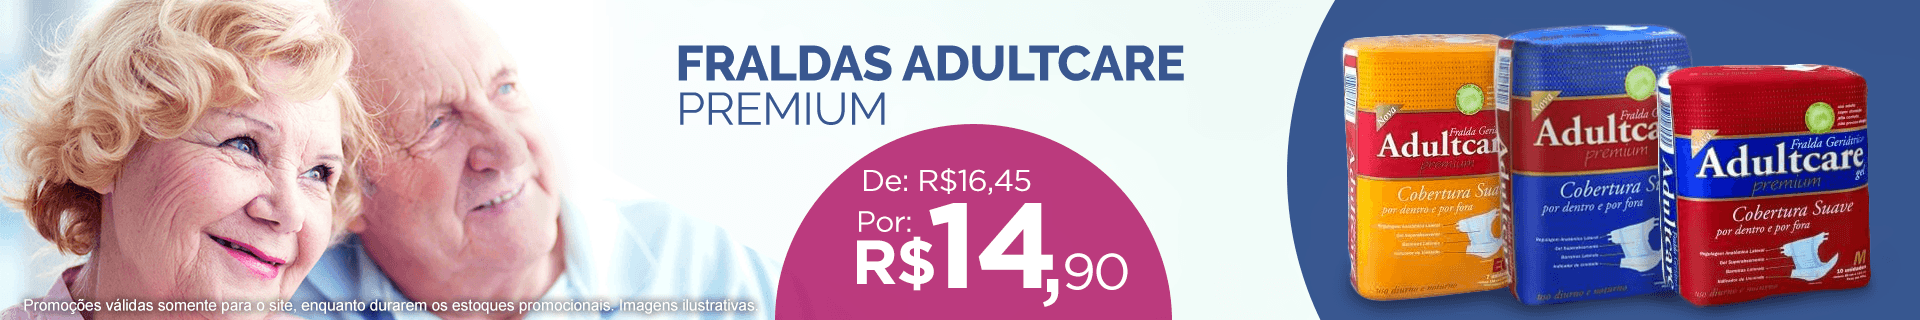 Banner Home | Promo Adultcare 19/01/2017